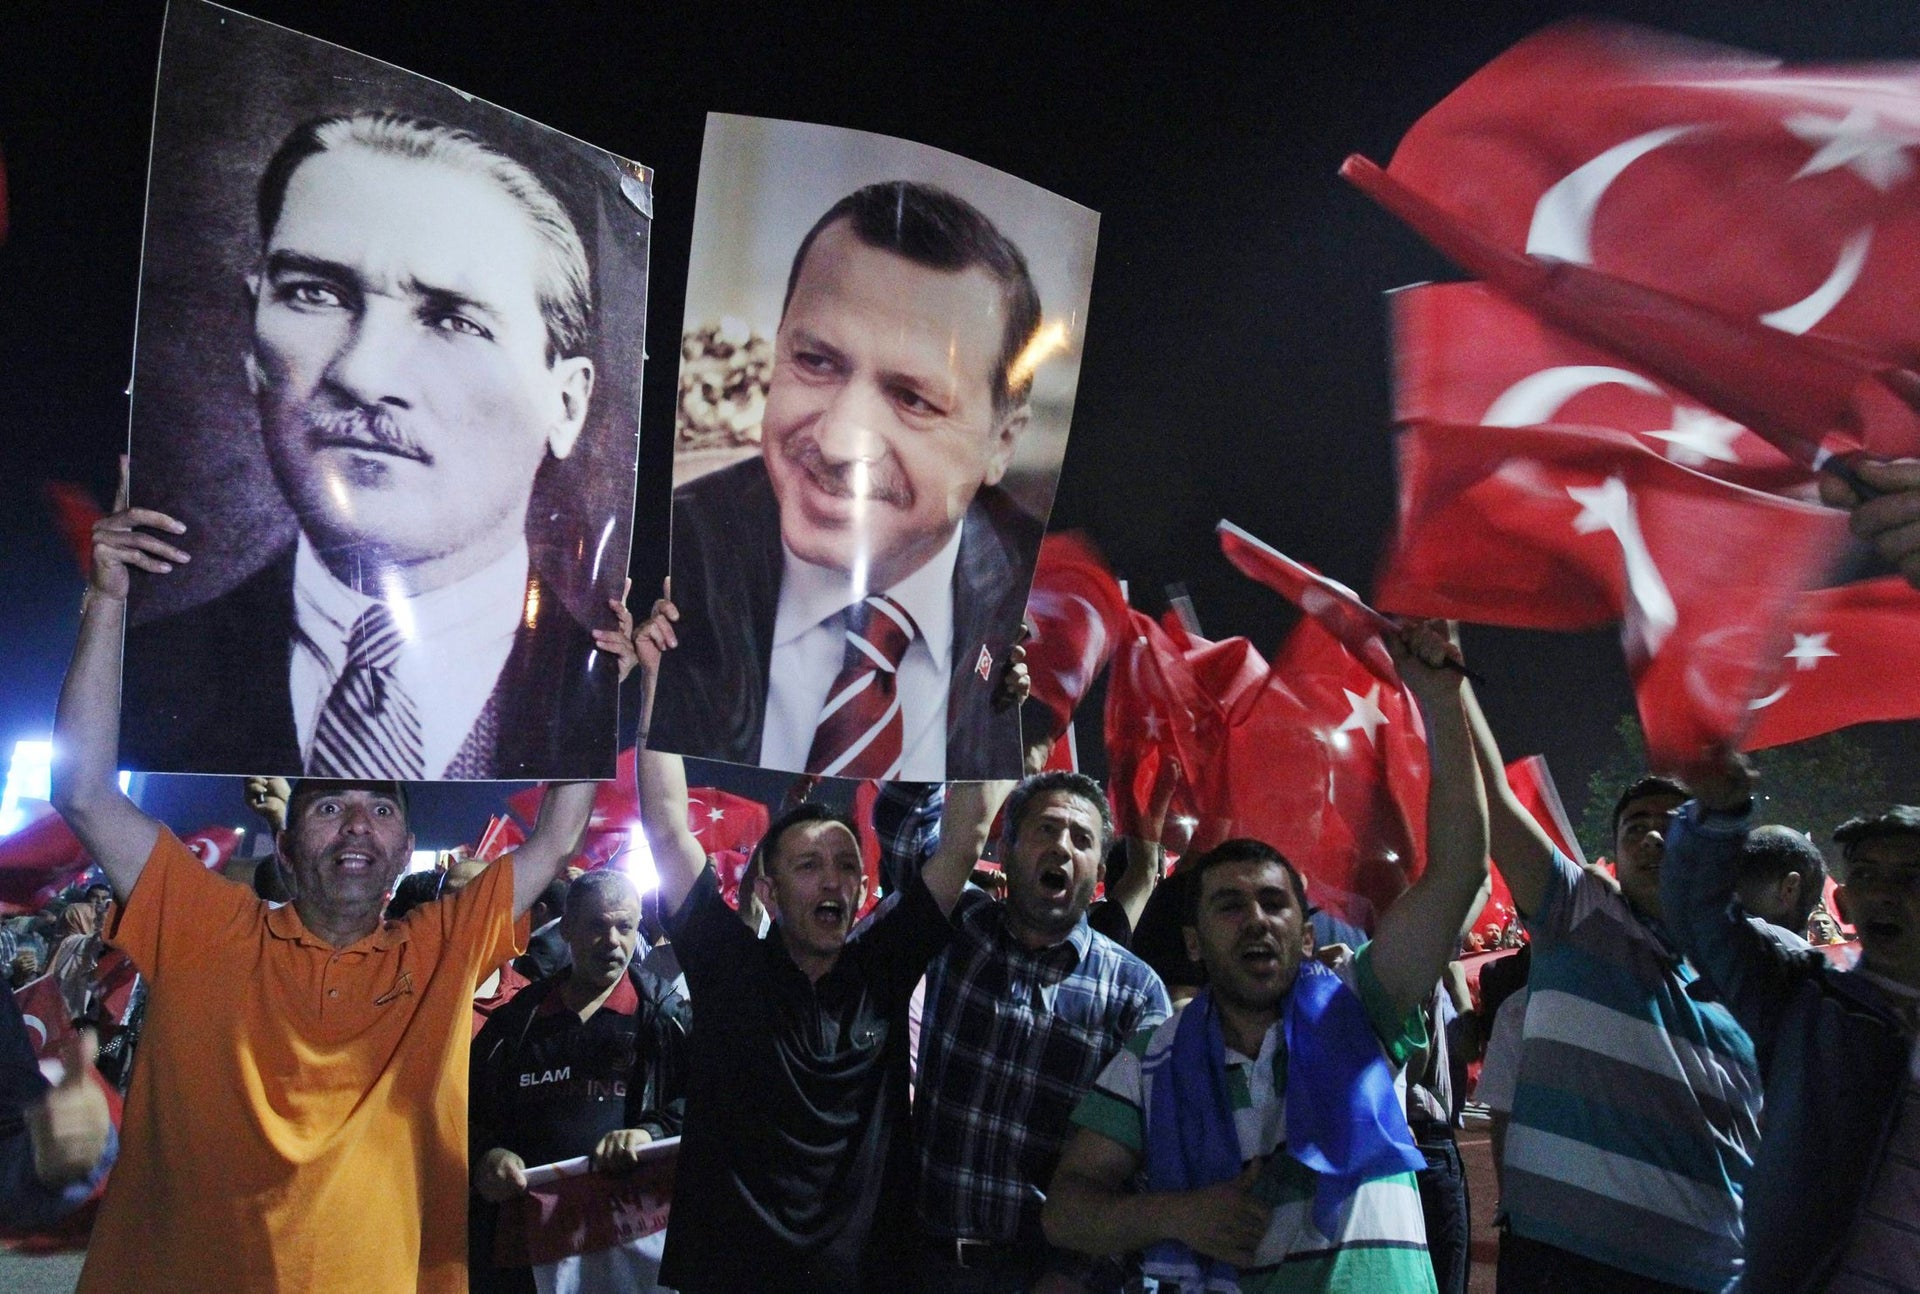 Supporters of the Justice and Development party hold the portraits of Mustafa Kemal Ataturk, left, and then-Prime Minister Recep Tayyip Erdogan, in June 2013.